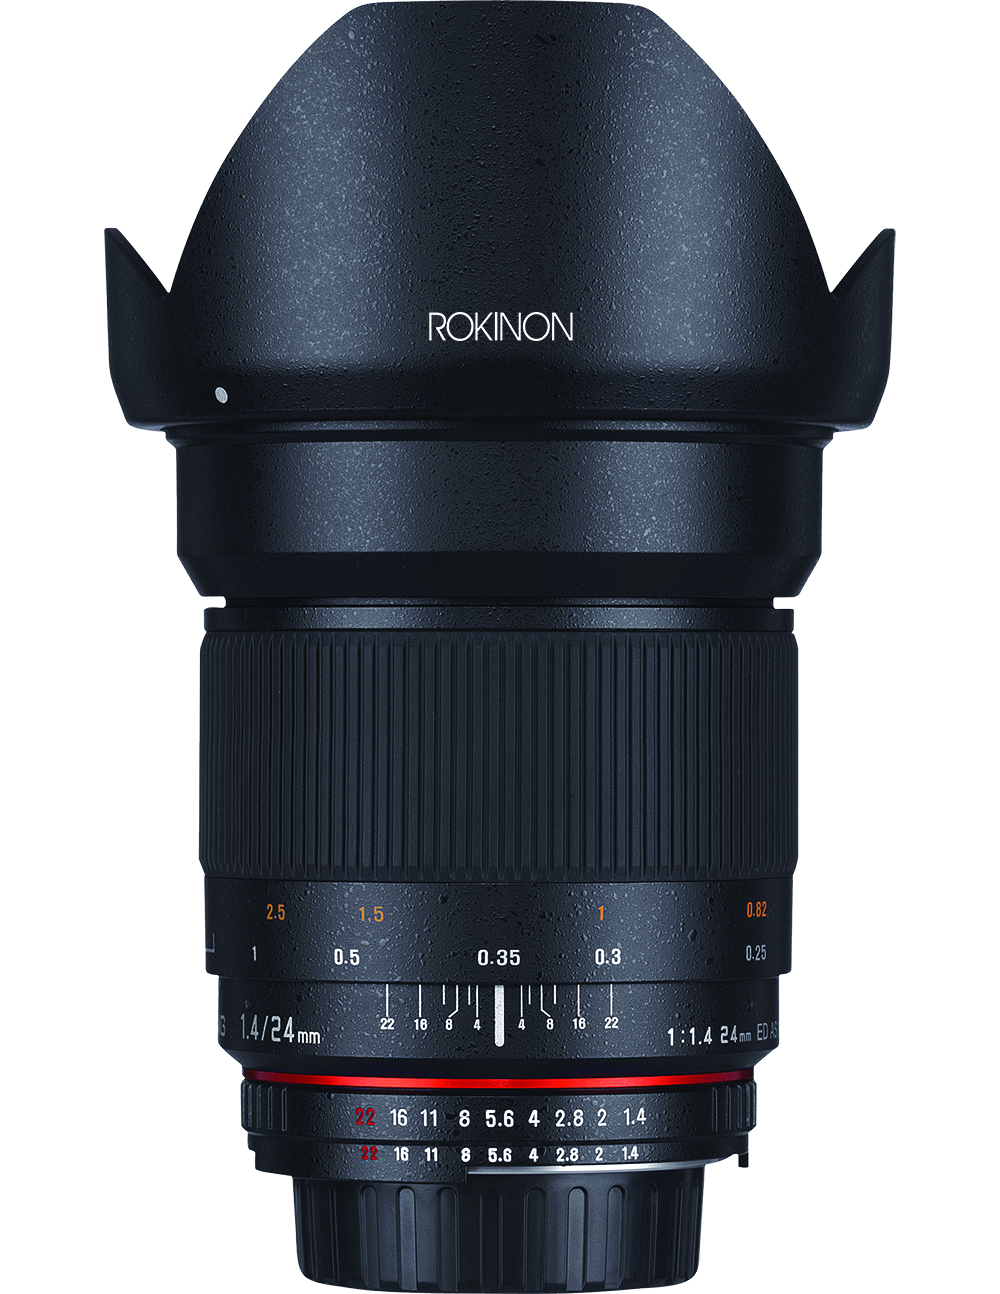 Rokinon 24mm f1.4 front image